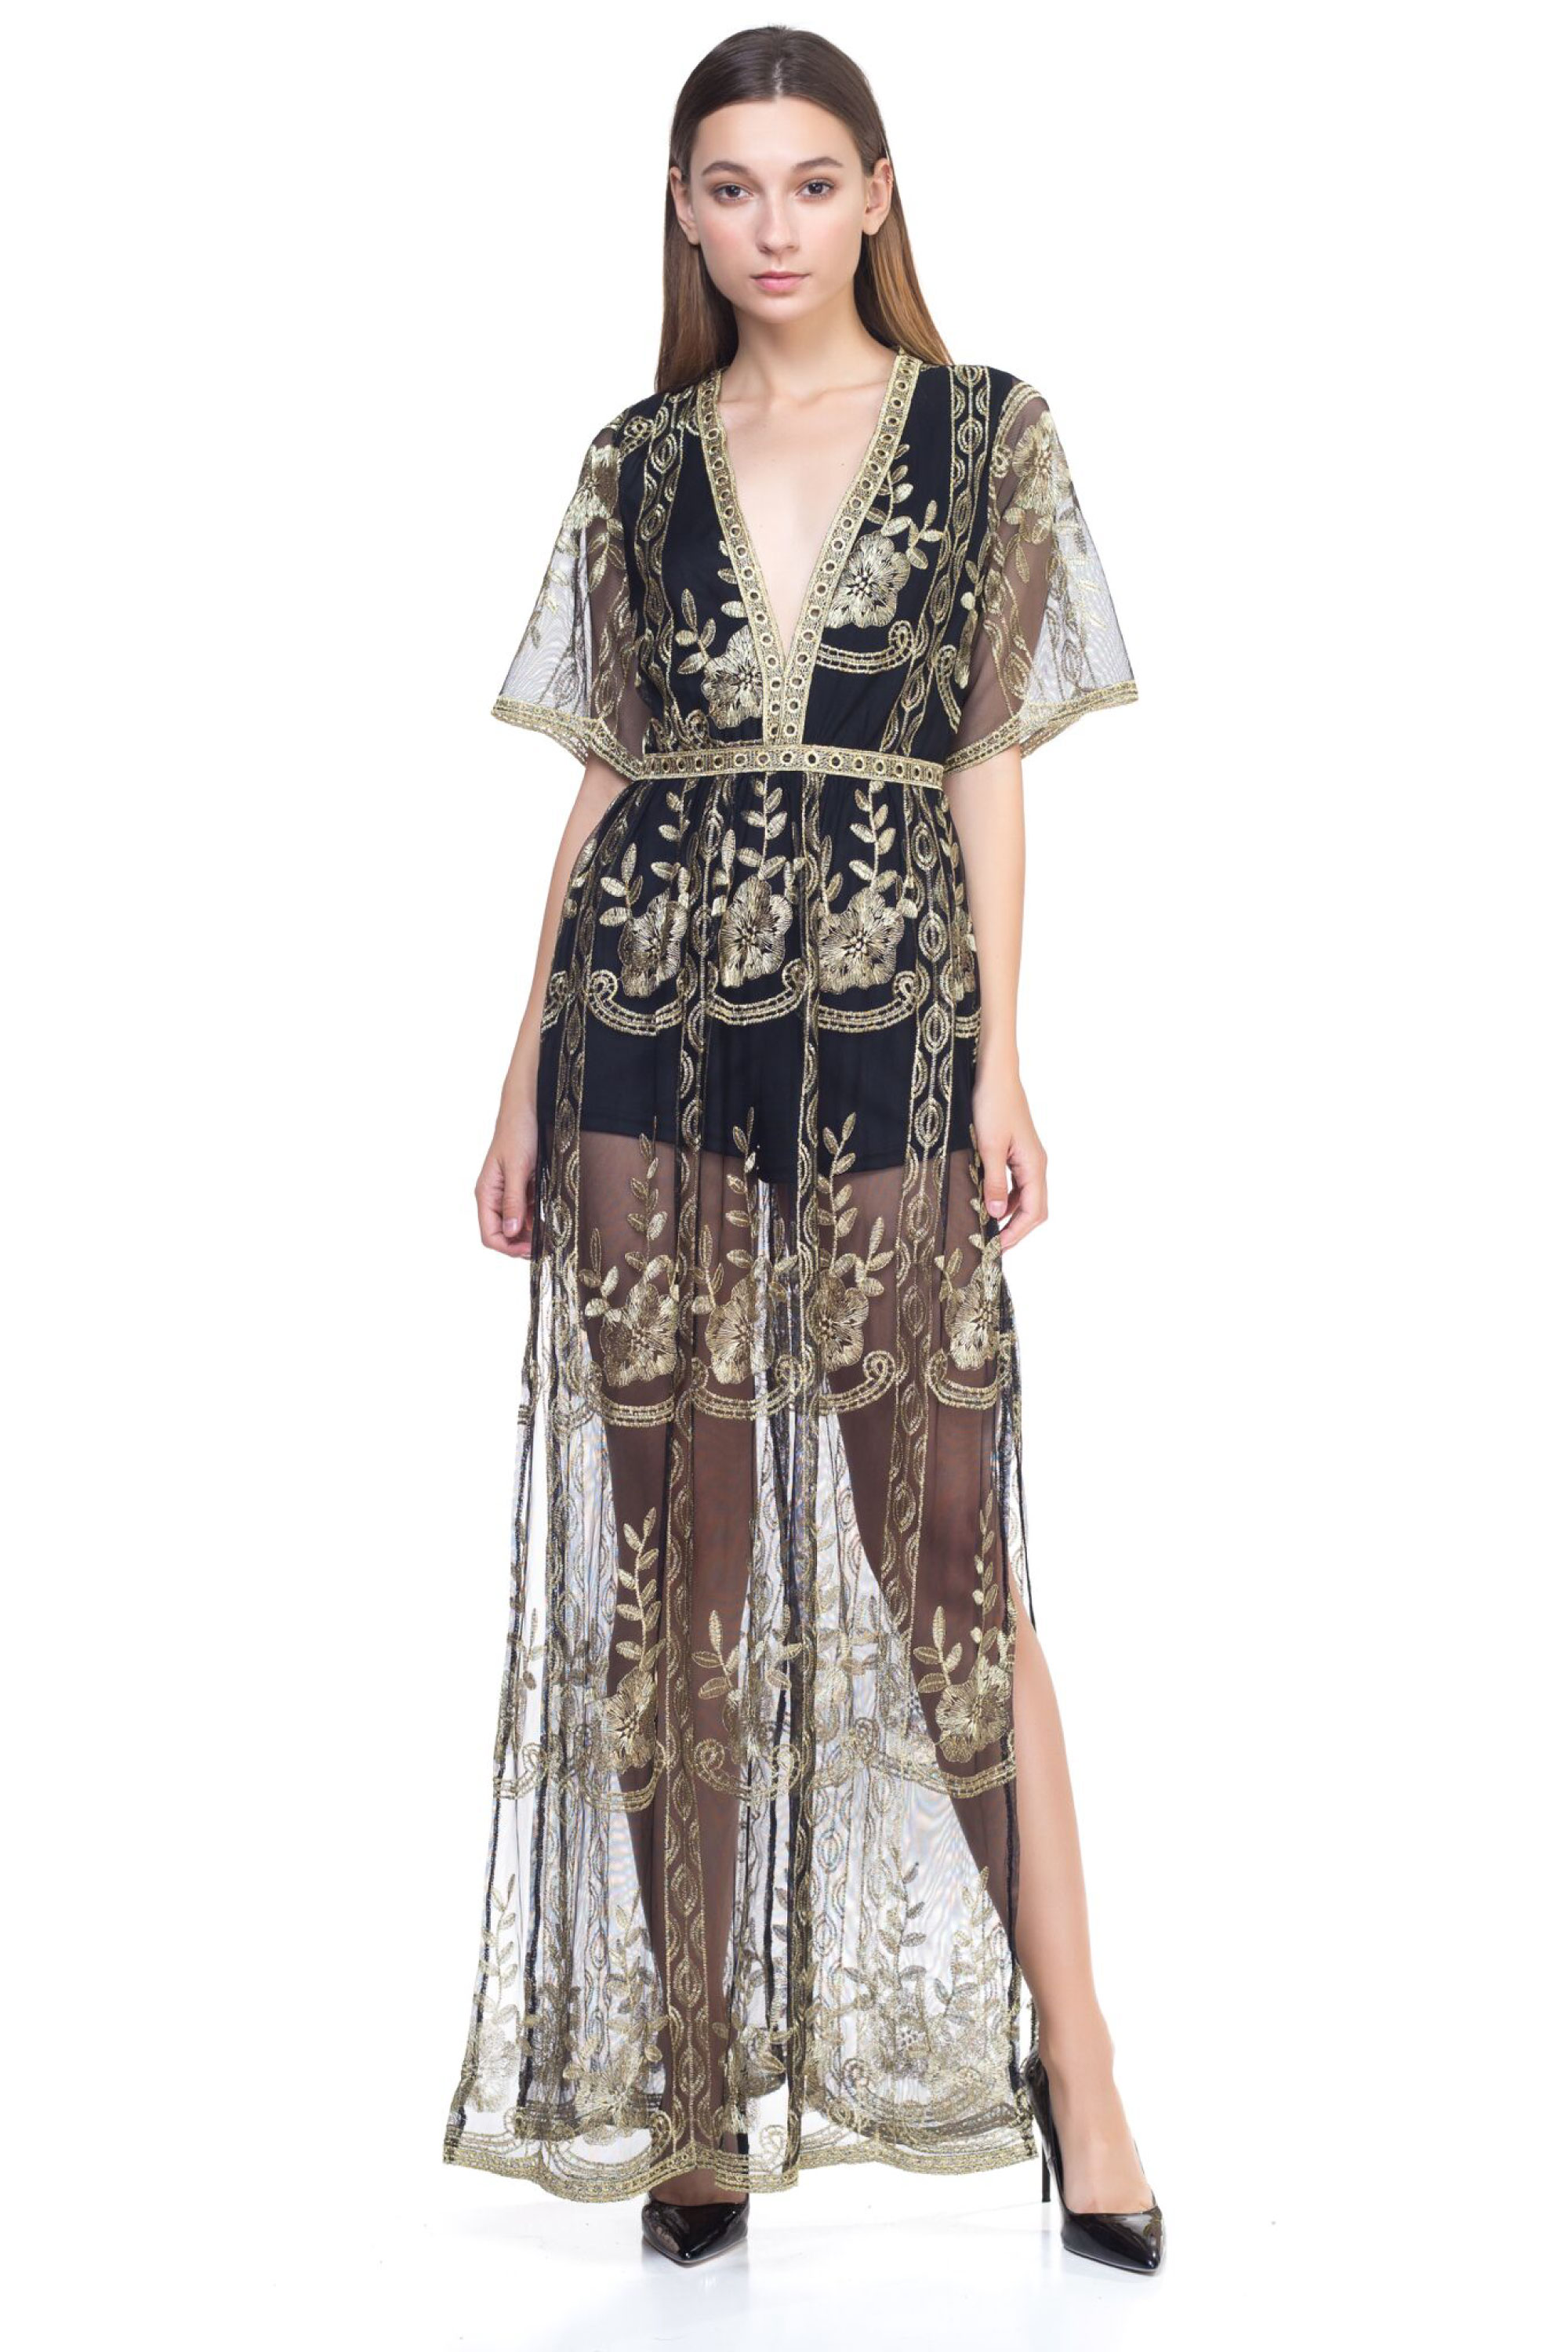 Details About Ofashionusa Womens Floral Embroidered Lace Maxi Dress